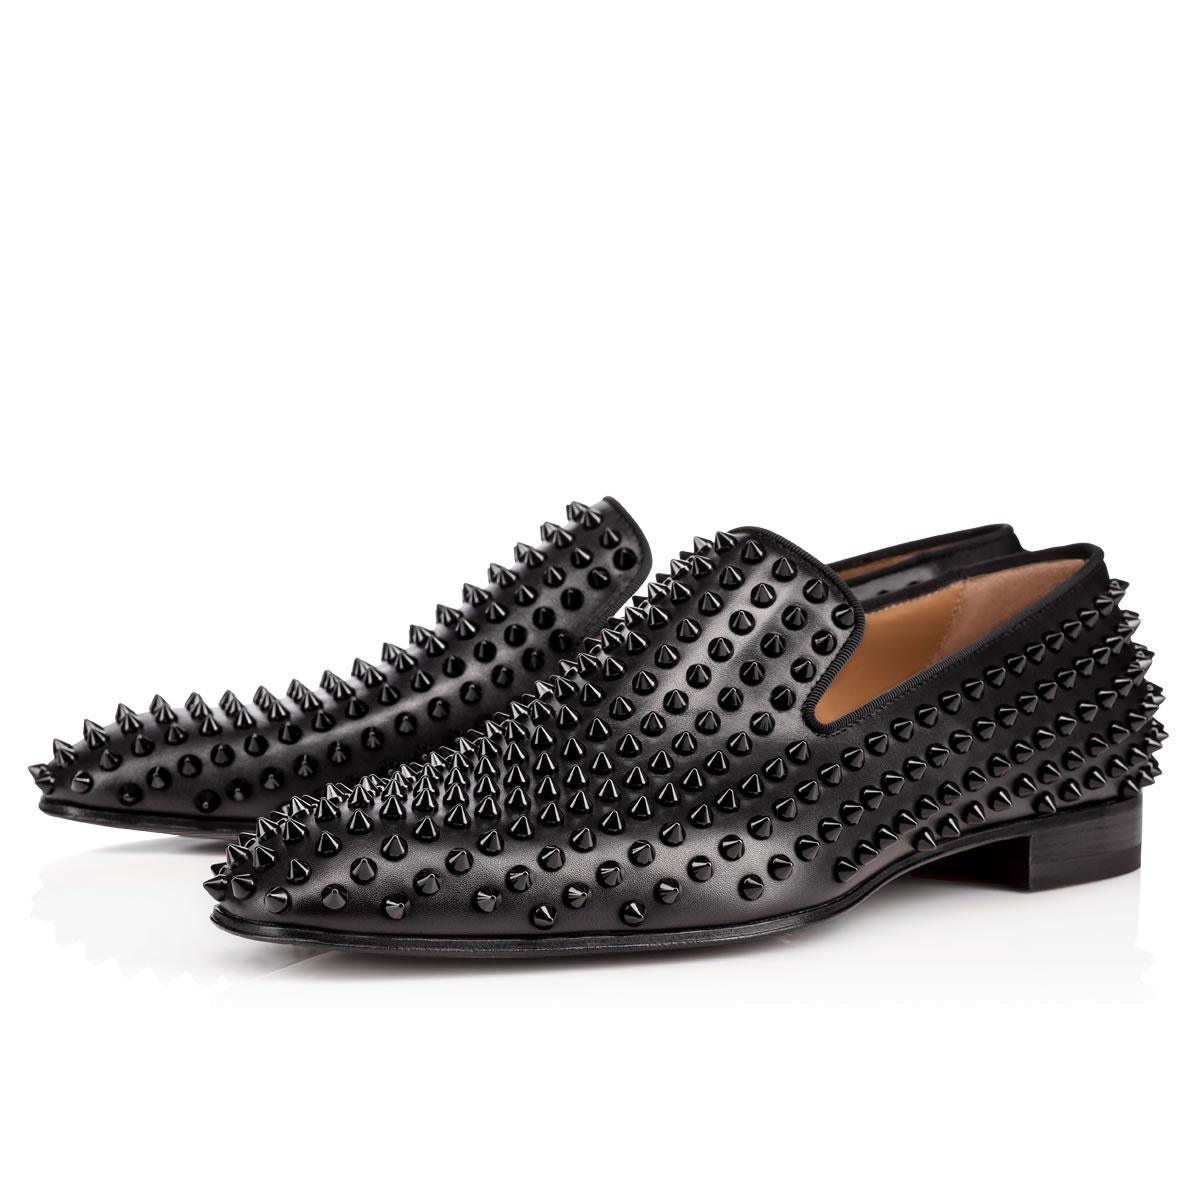 Hot Sale-designer mens shoes loafers black red spike Patent Leather Slip On Dress Wedding flats bottoms Shoe for Business Party size 39-47